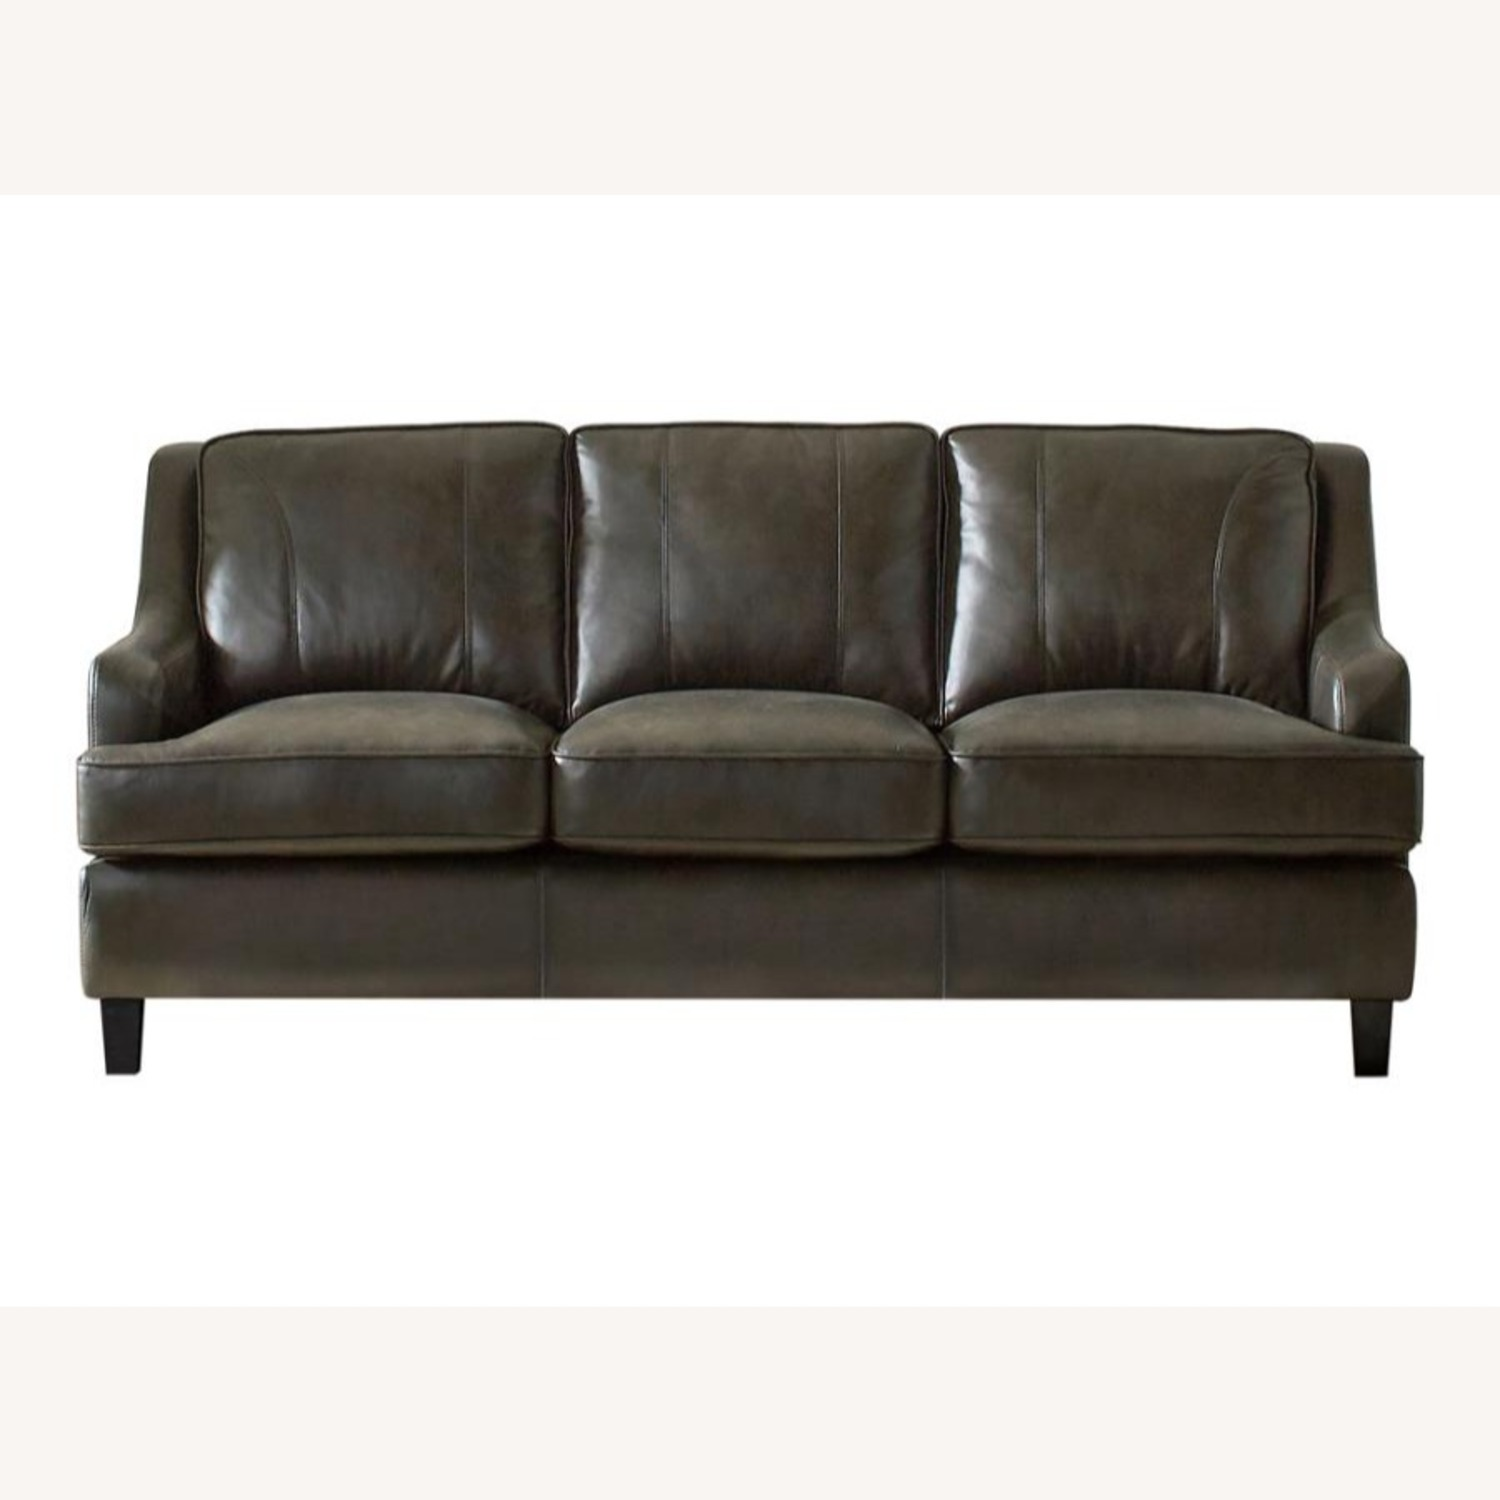 Sofa In Grey Leatherette W/ Stitching Details - image-0